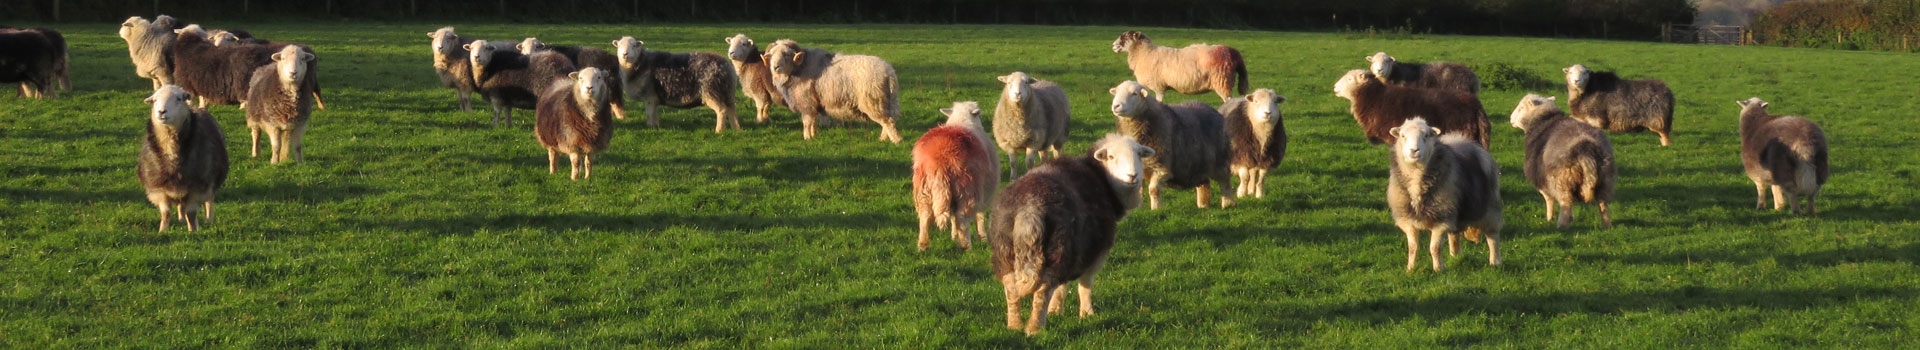 A field of Herdwick sheep at South Yeo Farm West